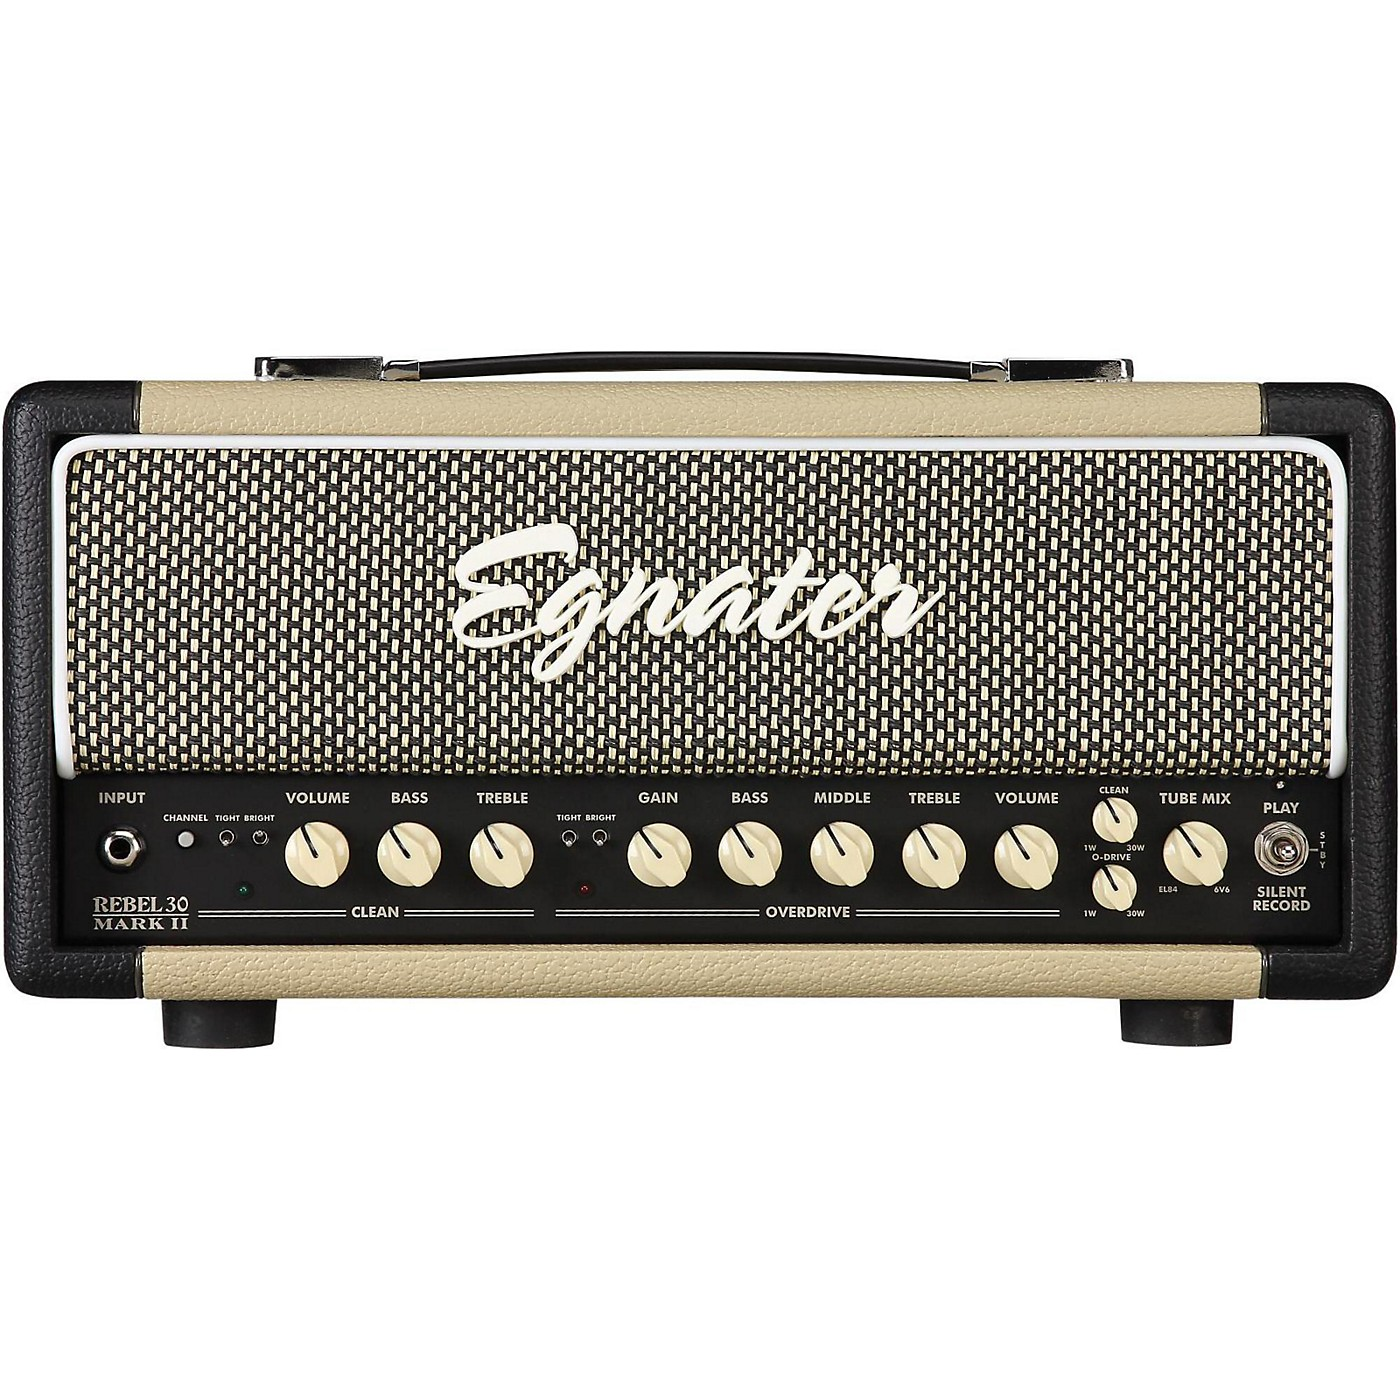 Egnater Rebel-30 Mark II 30W Guitar Tube Head thumbnail